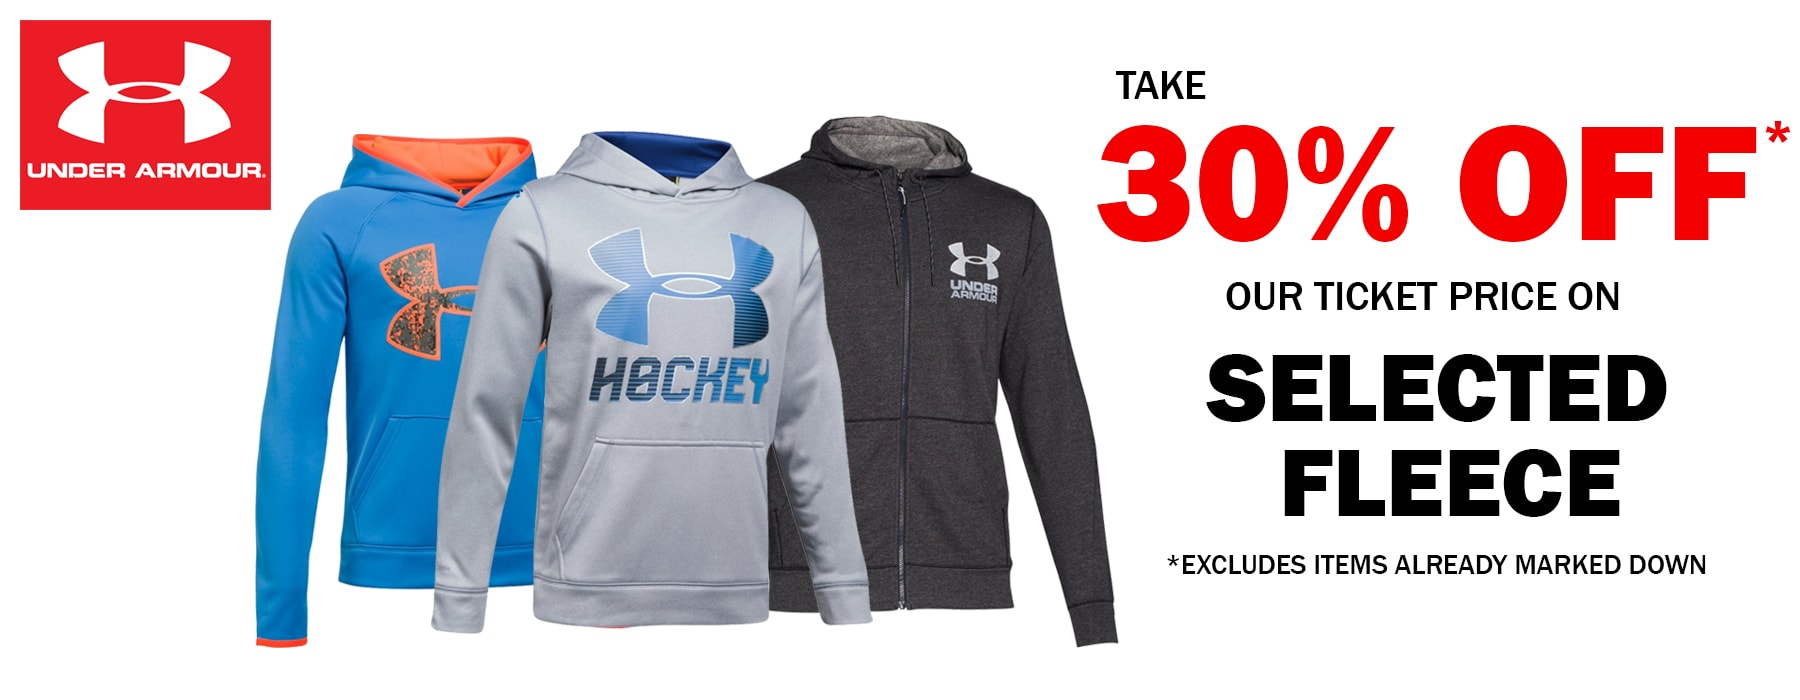 Under Armour Selected Fleece